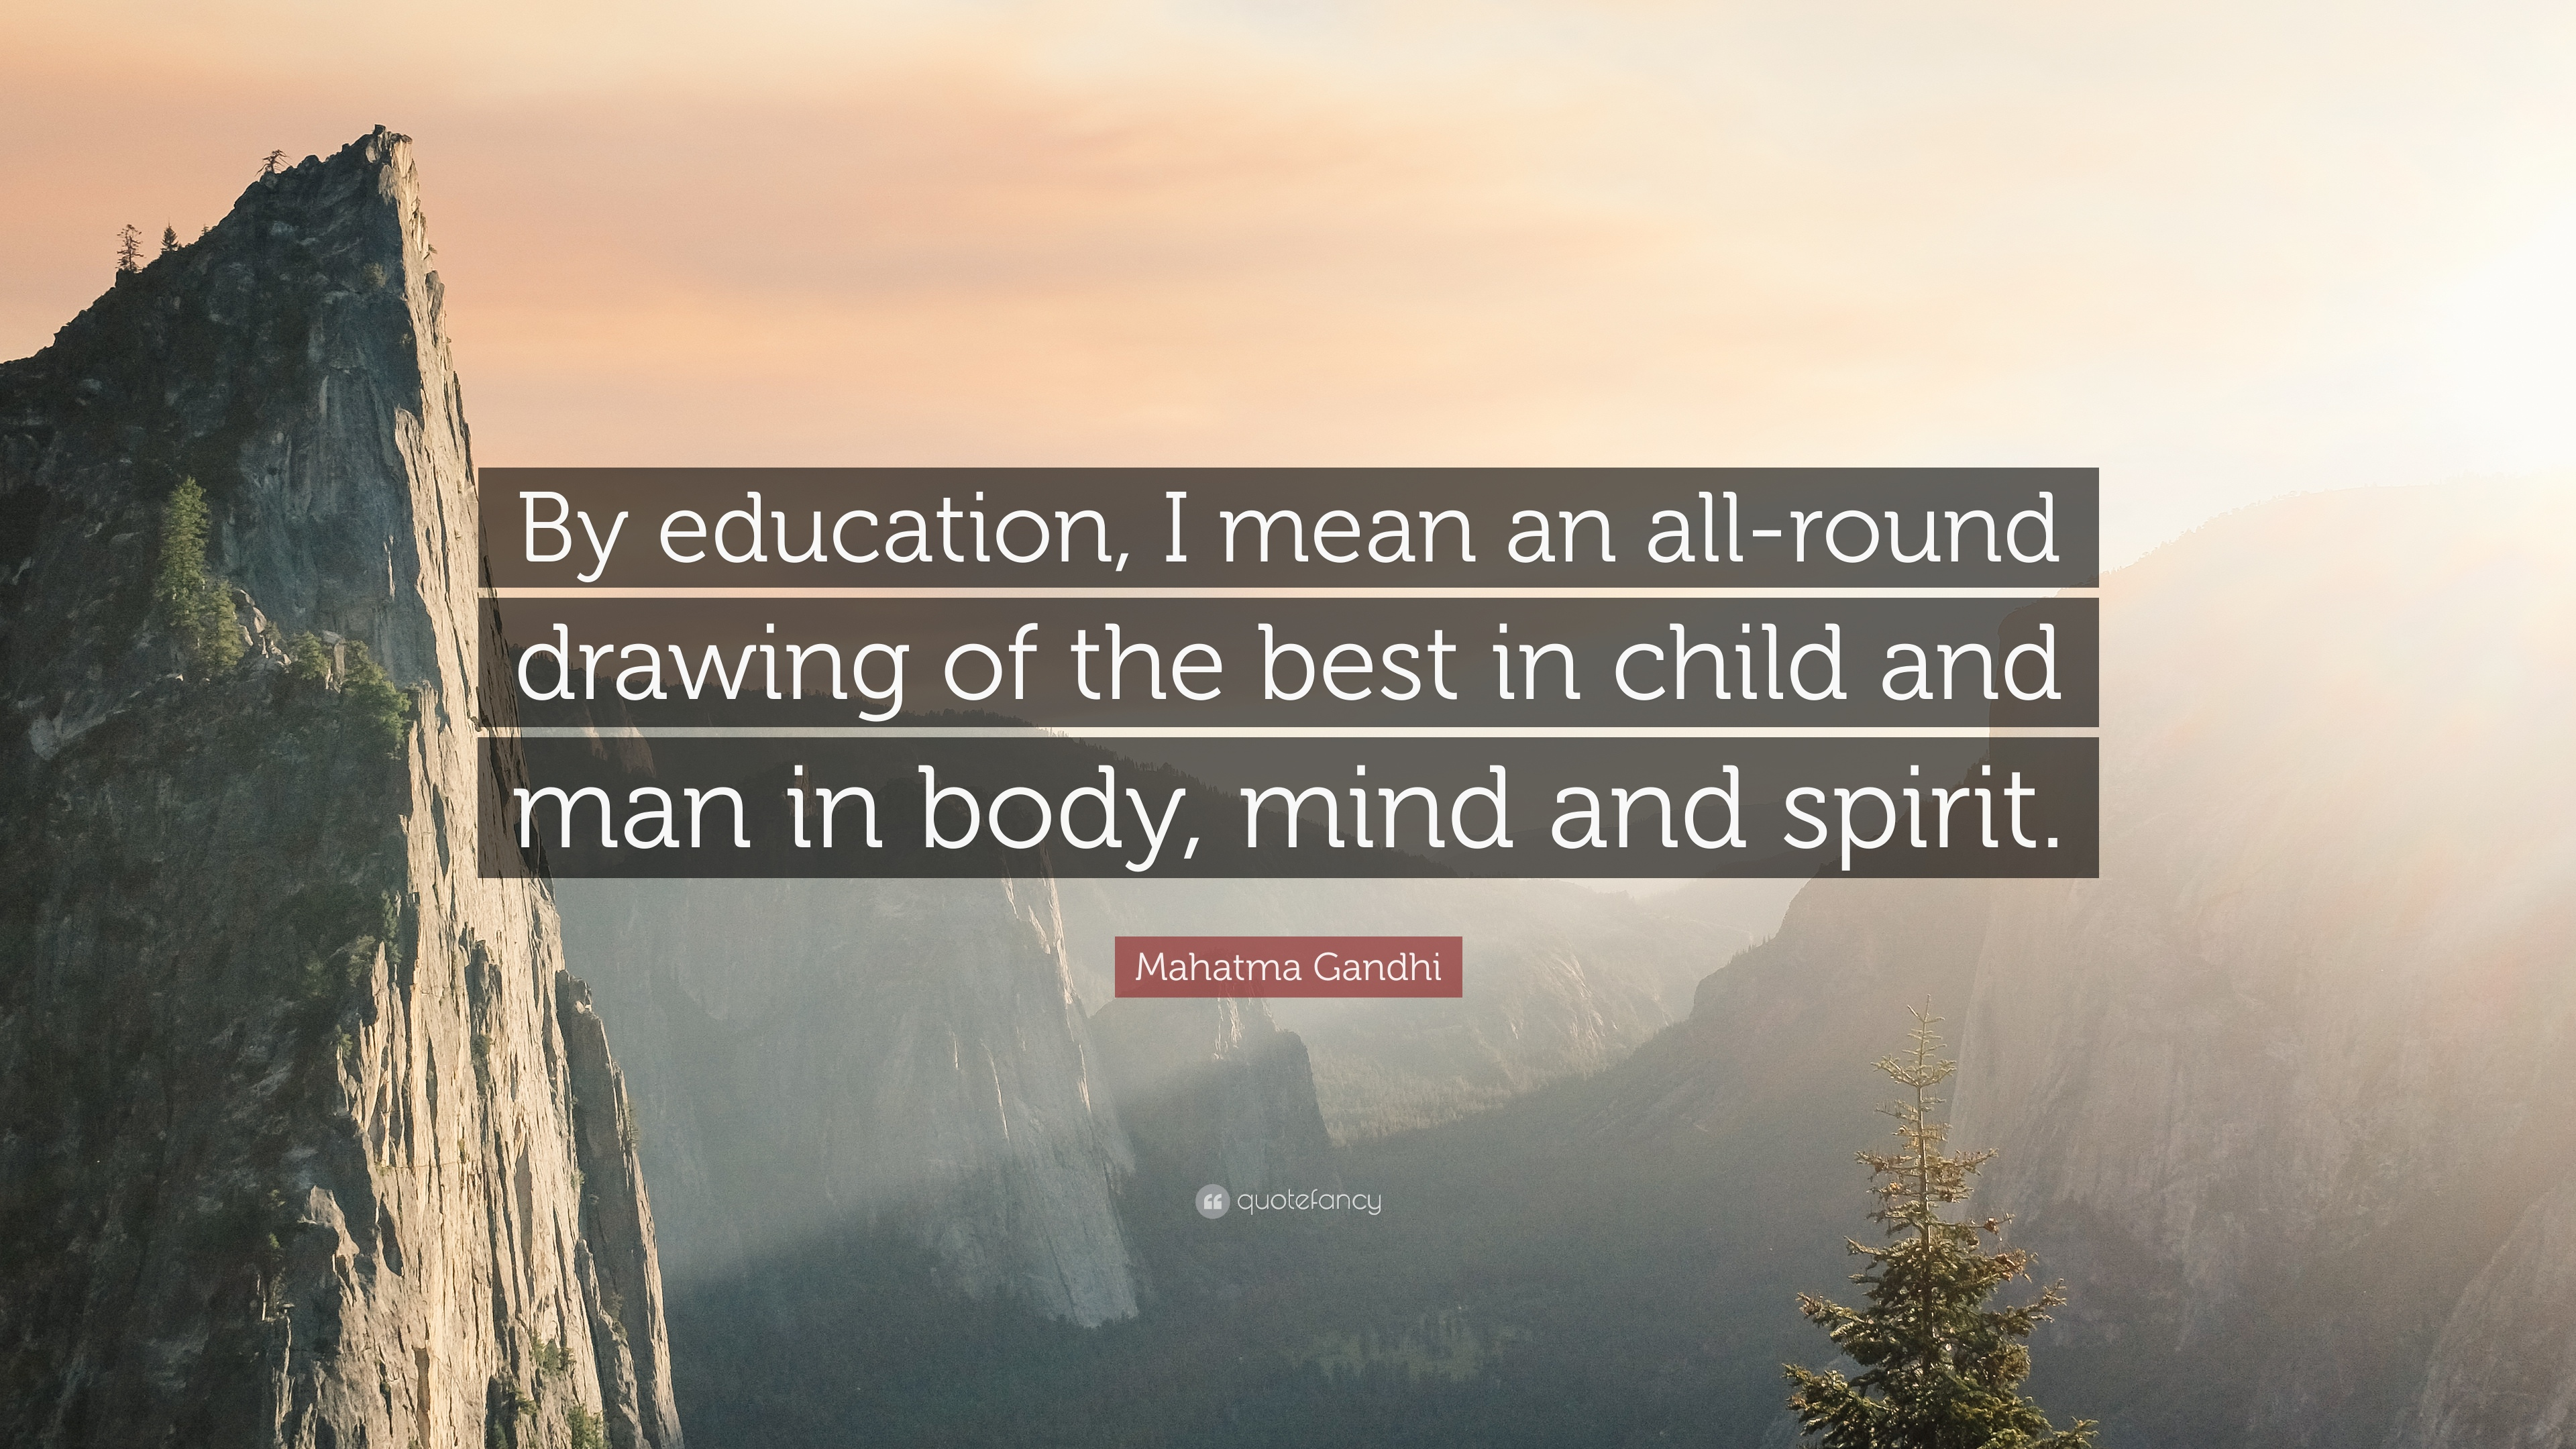 Mahatma Gandhi Quote By Education I Mean An All Round Drawing Of